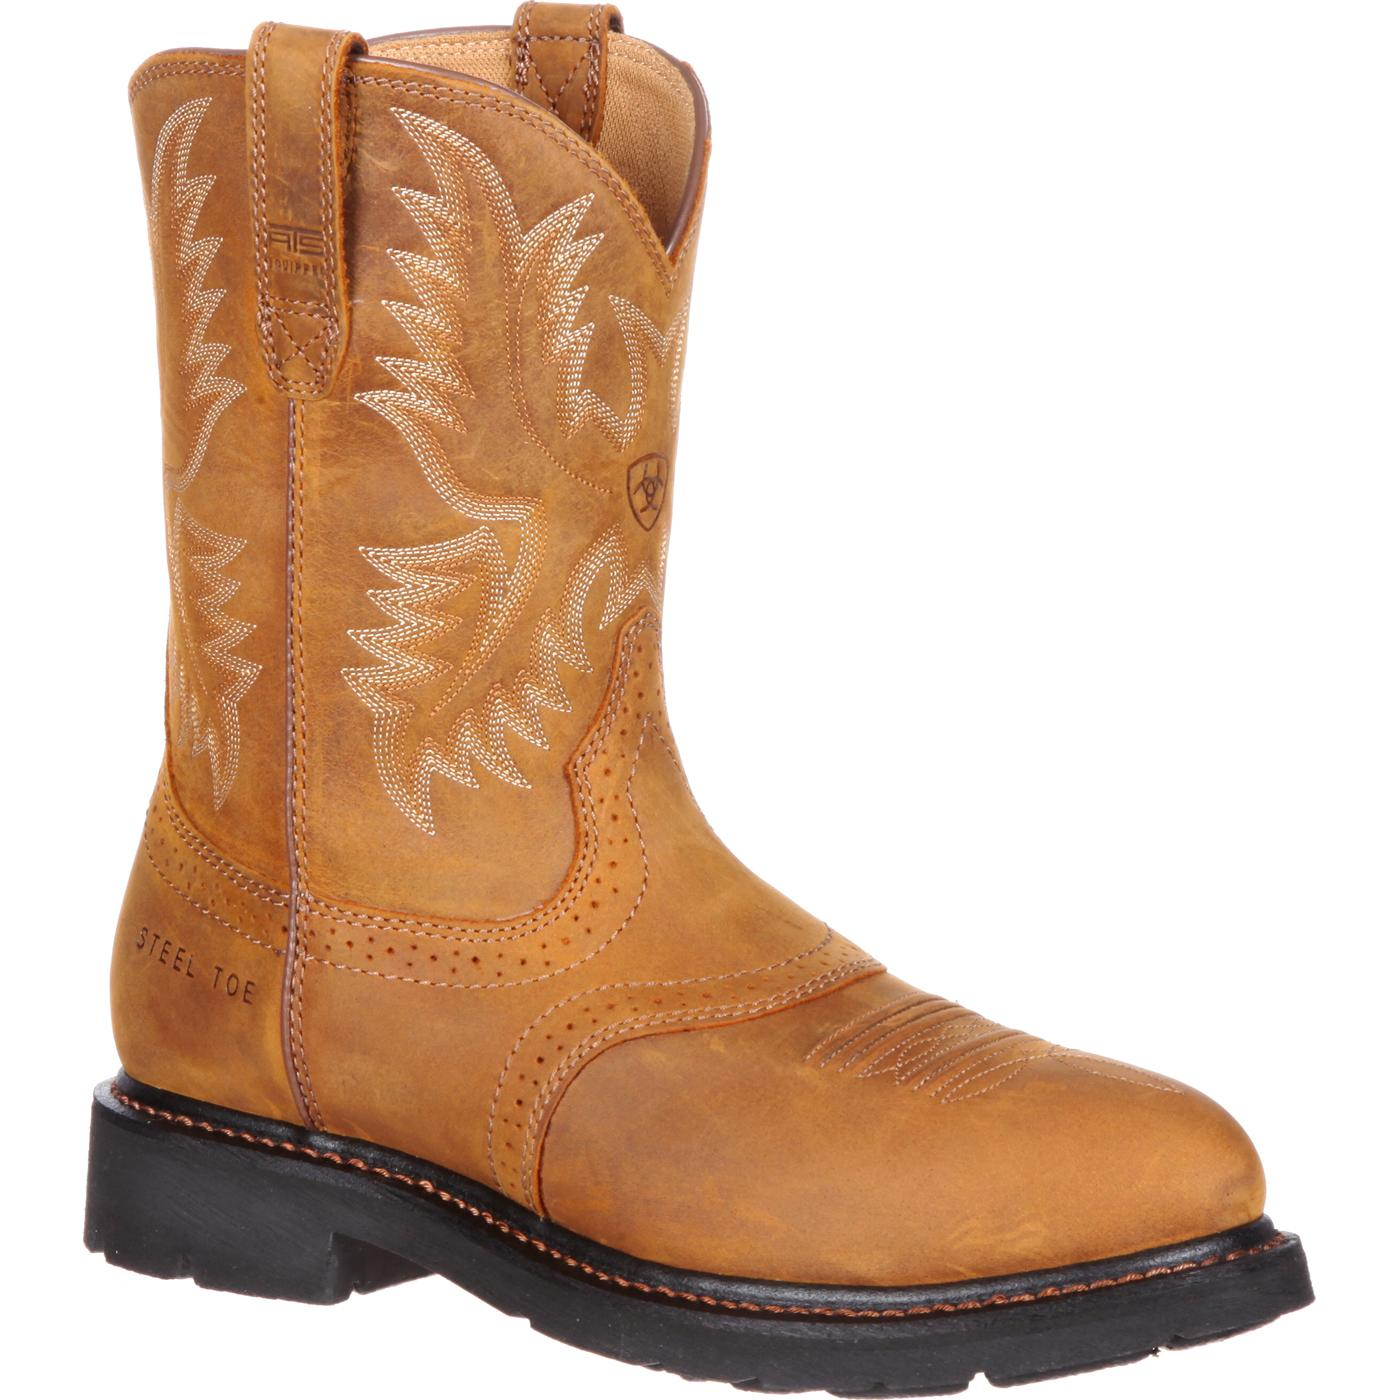 Ariat Sierra Saddle Steel Toe Western Work Boot